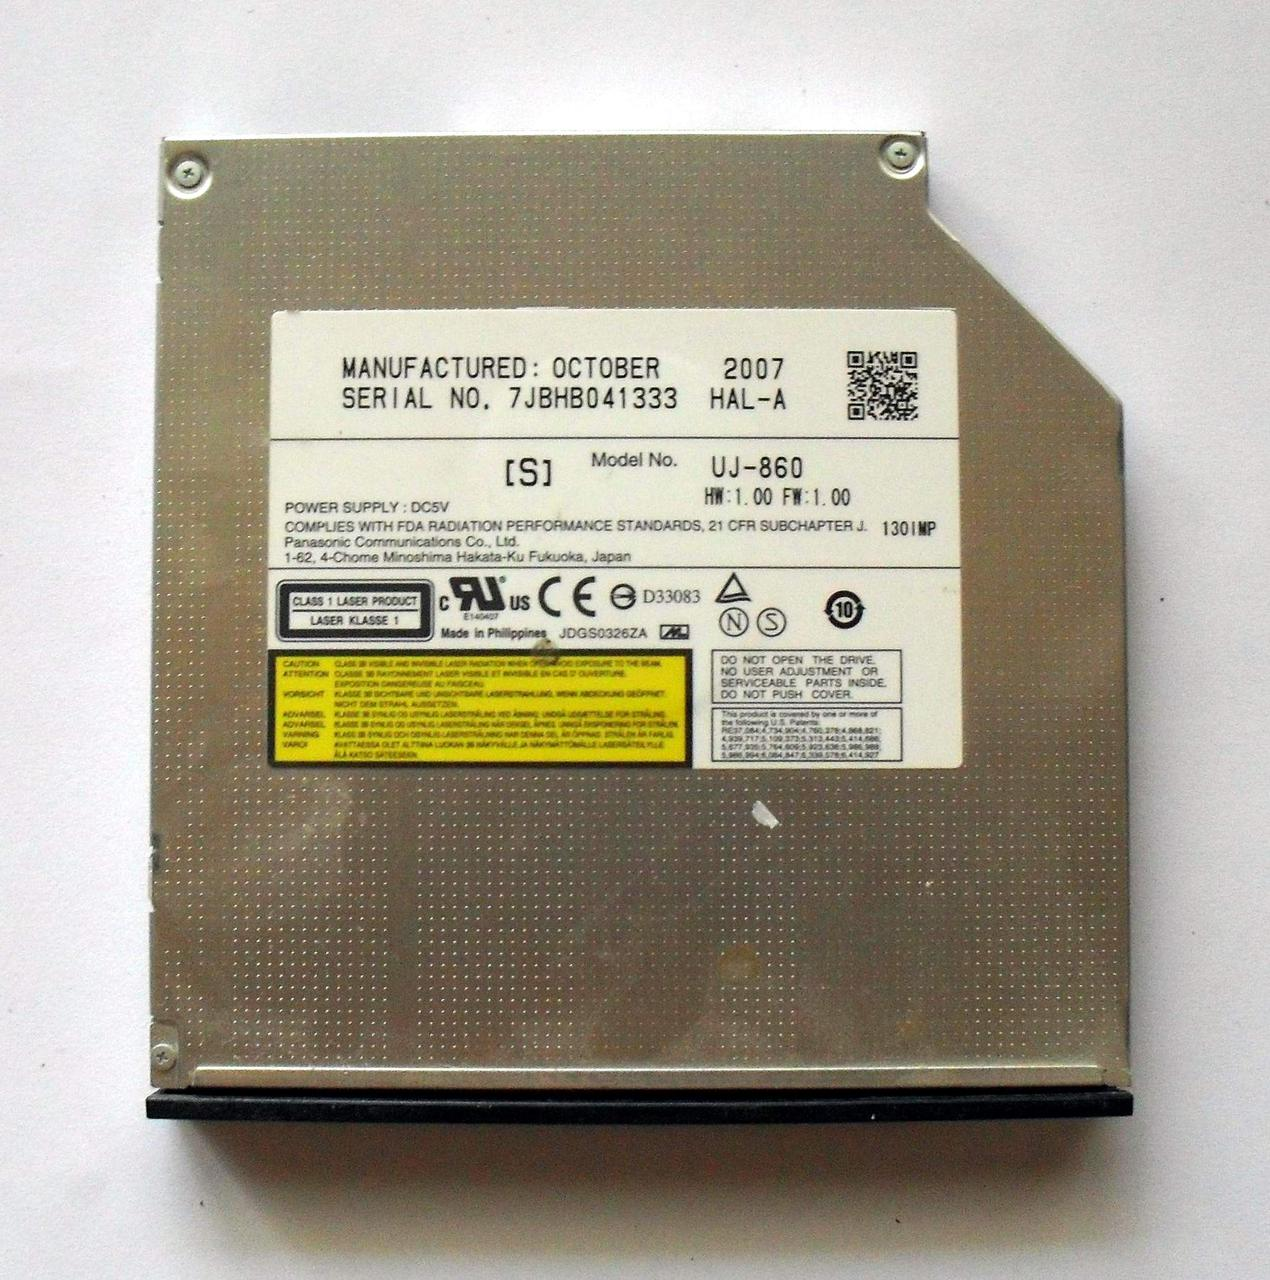 MATSHITA UJ-860H DRIVER DOWNLOAD FREE